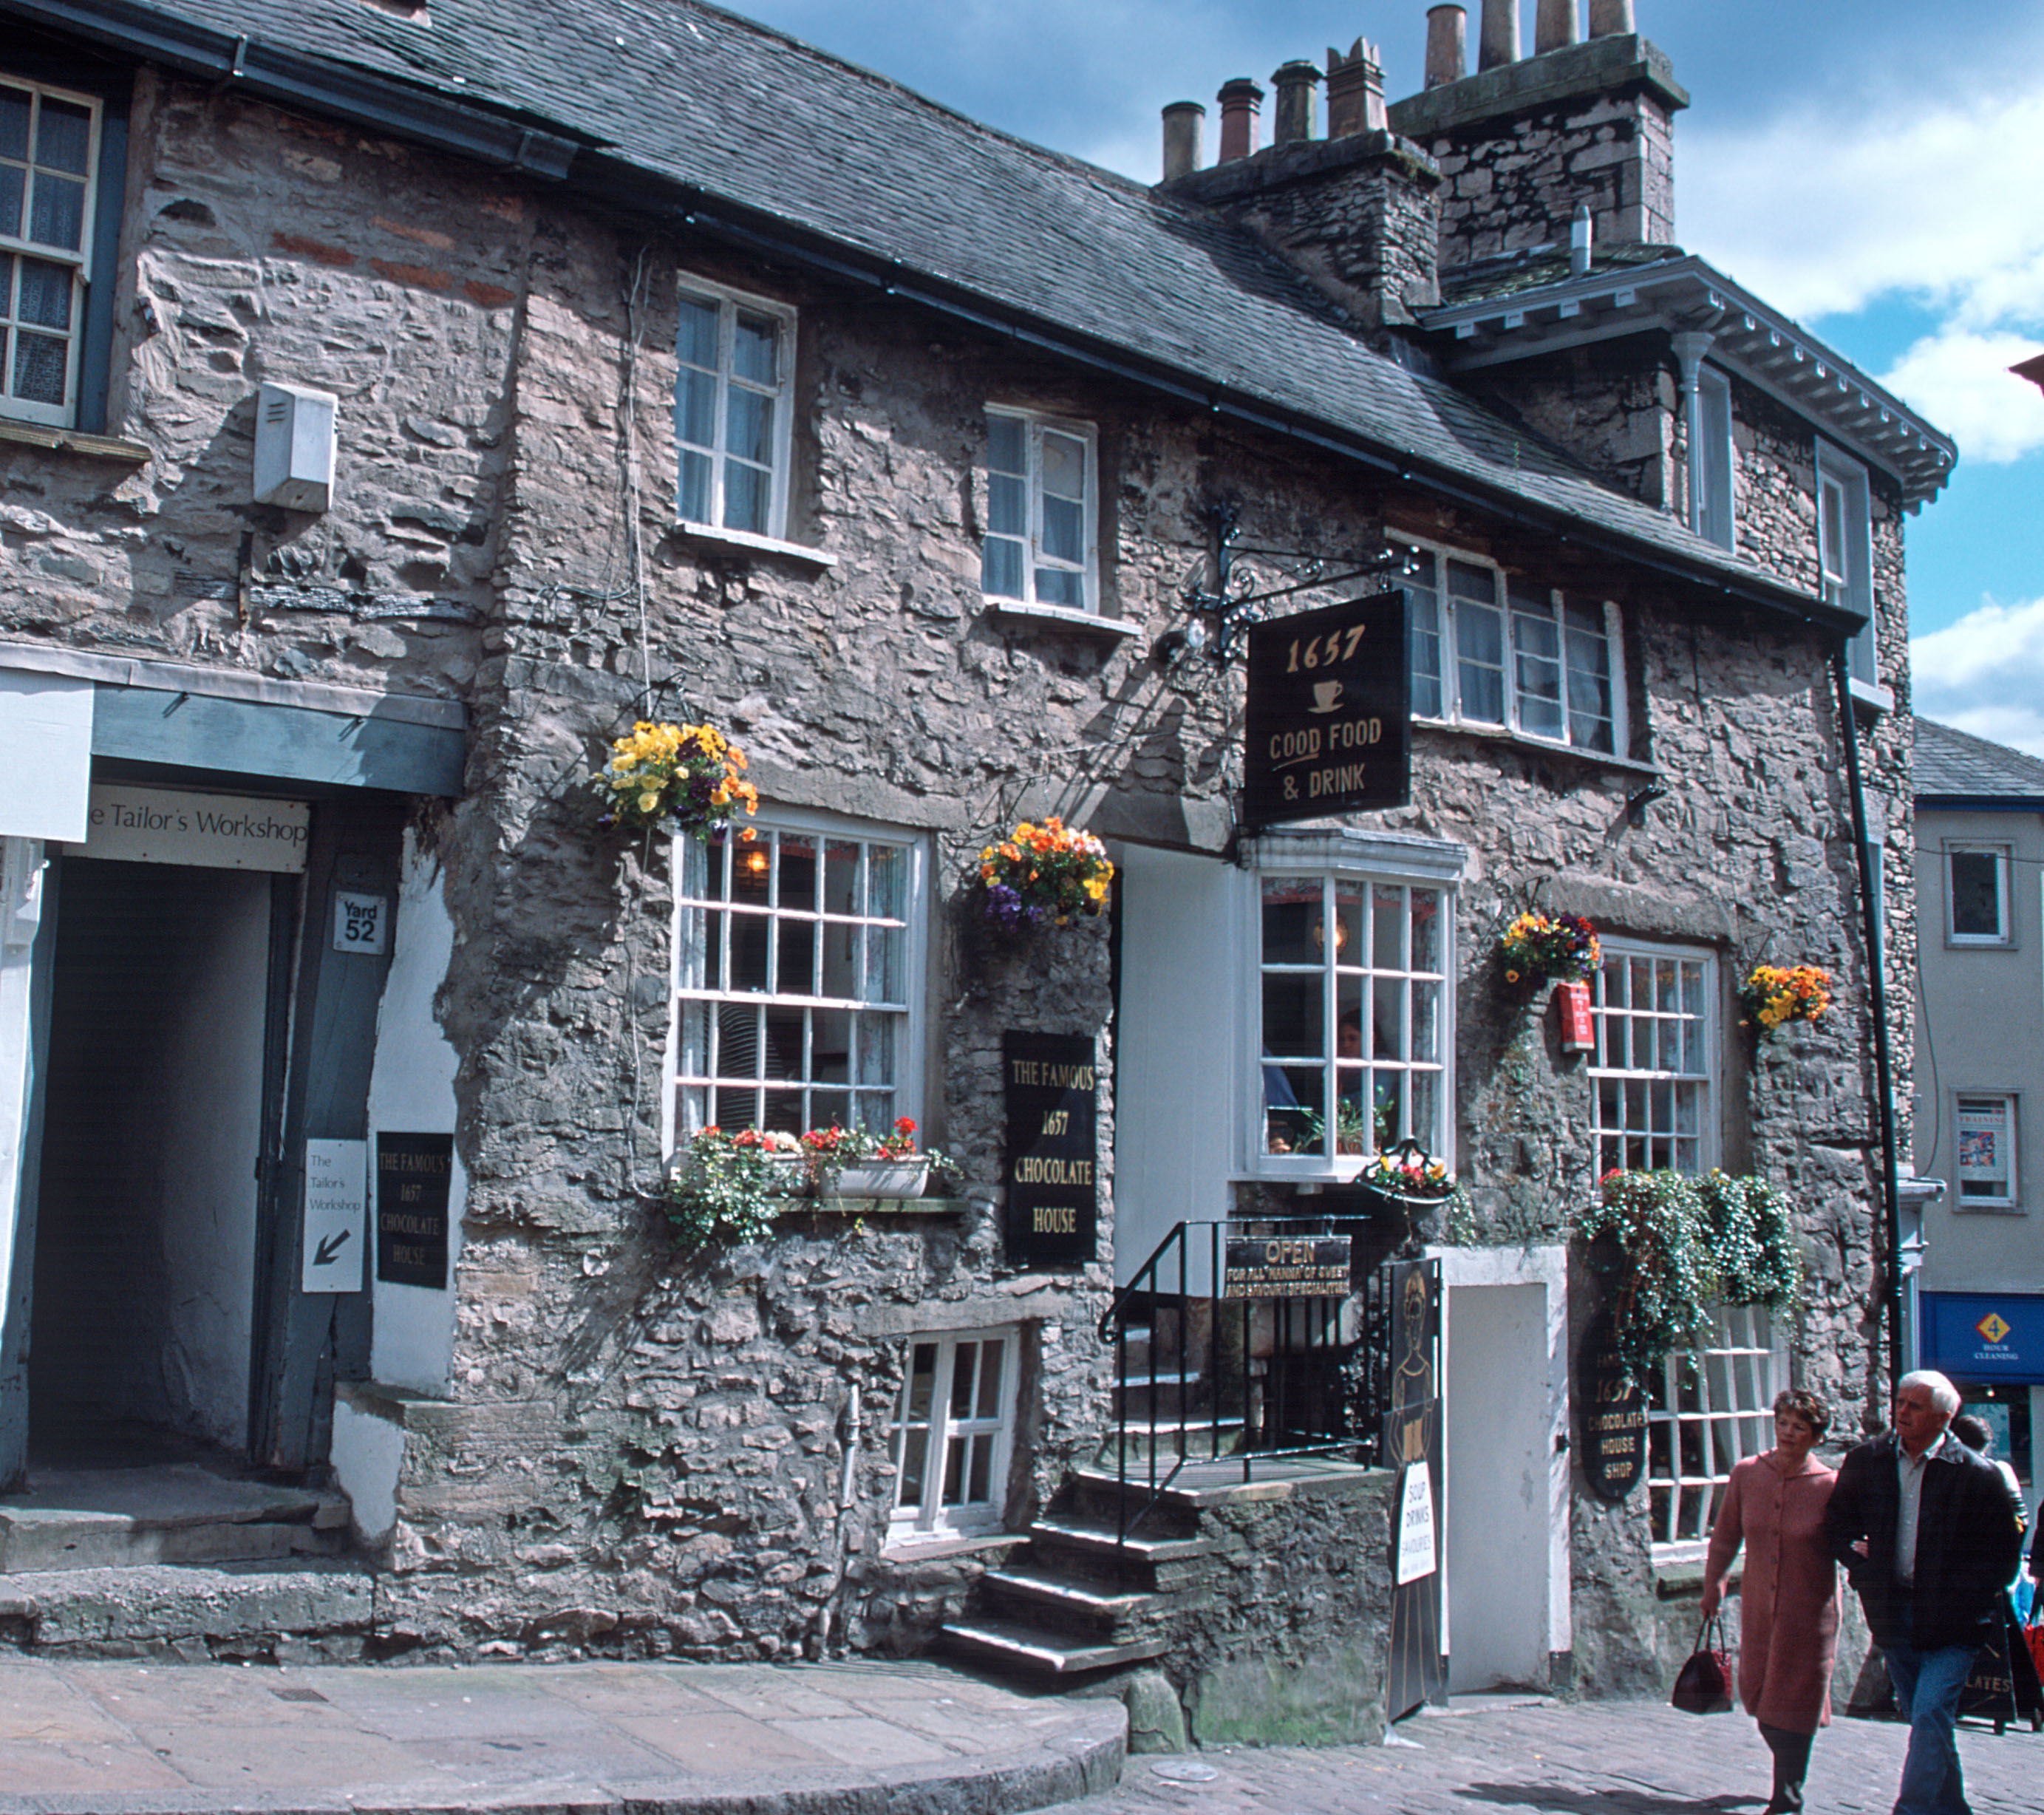 The Chocolate House in Kendal. The cafe is in one of Kendal's oldest buildings dating back to 1657.